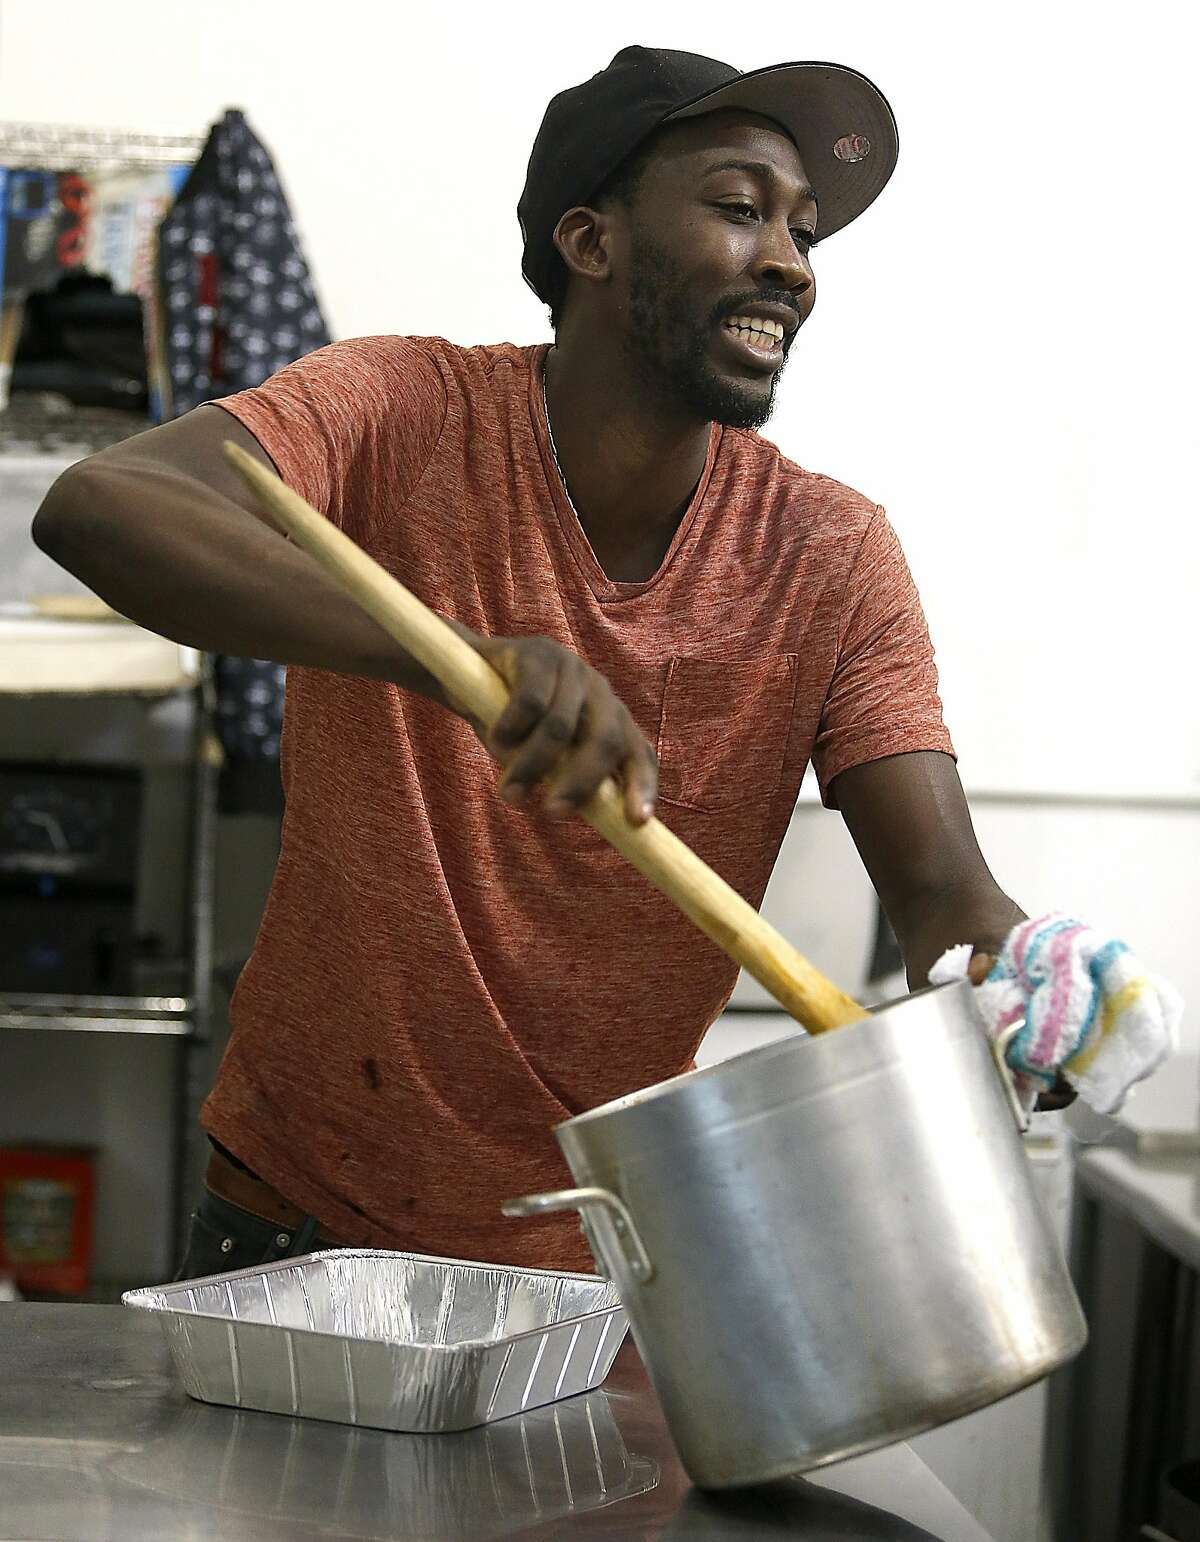 Owner/chef O�Brian Matterson stirs lentil beans as he fulfills catering orders for Jamaican food in the kitchen on Friday, October 27, 2016, in Richmond, Calif.